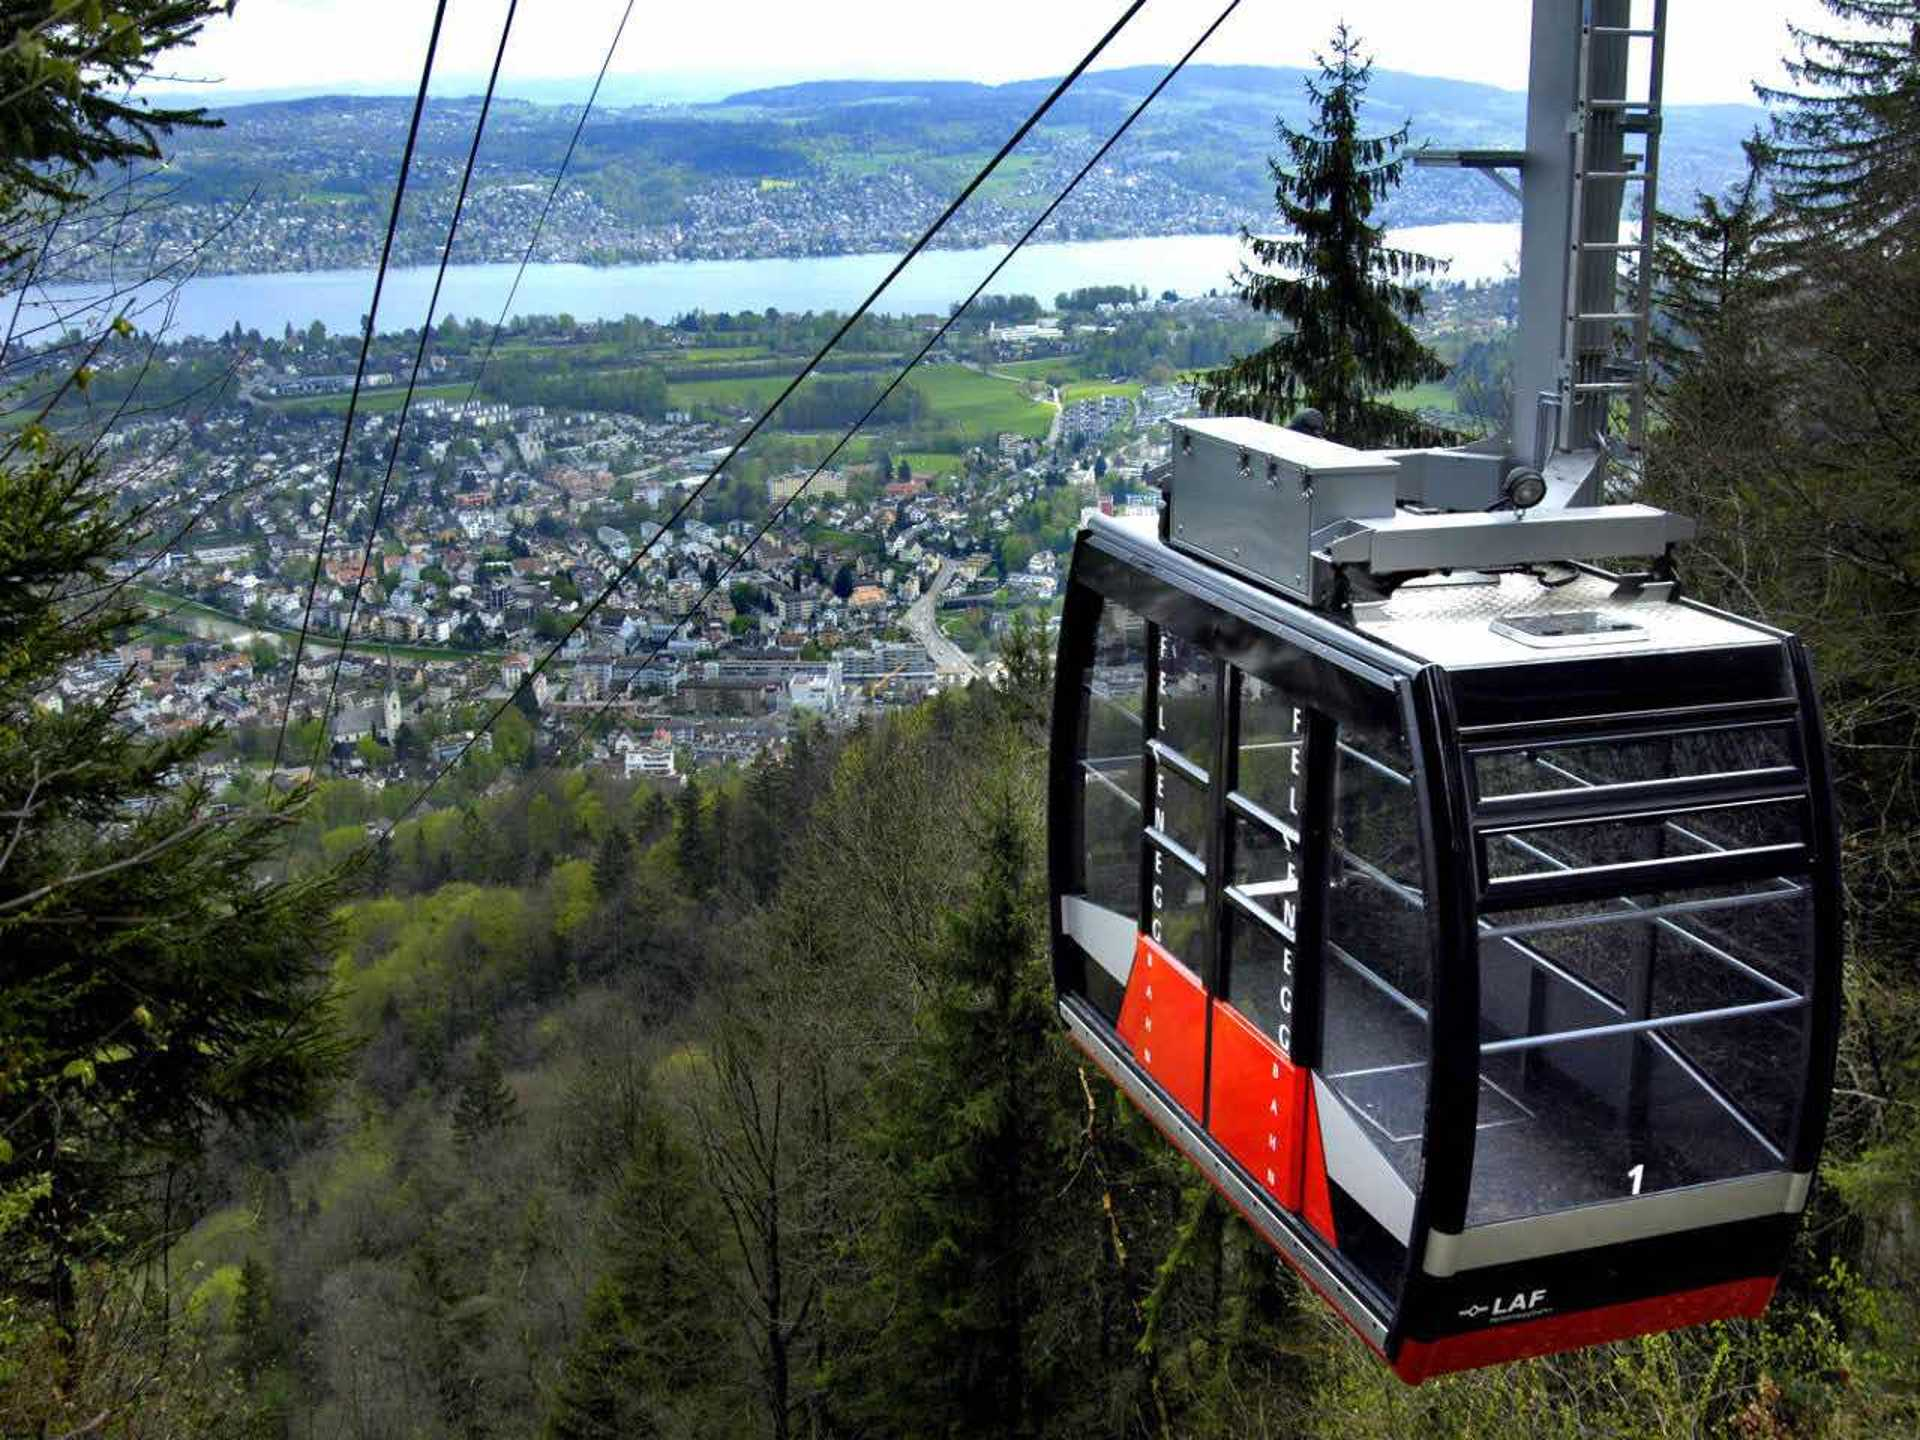 You can also ride an aerial cable car to Felsenegg!